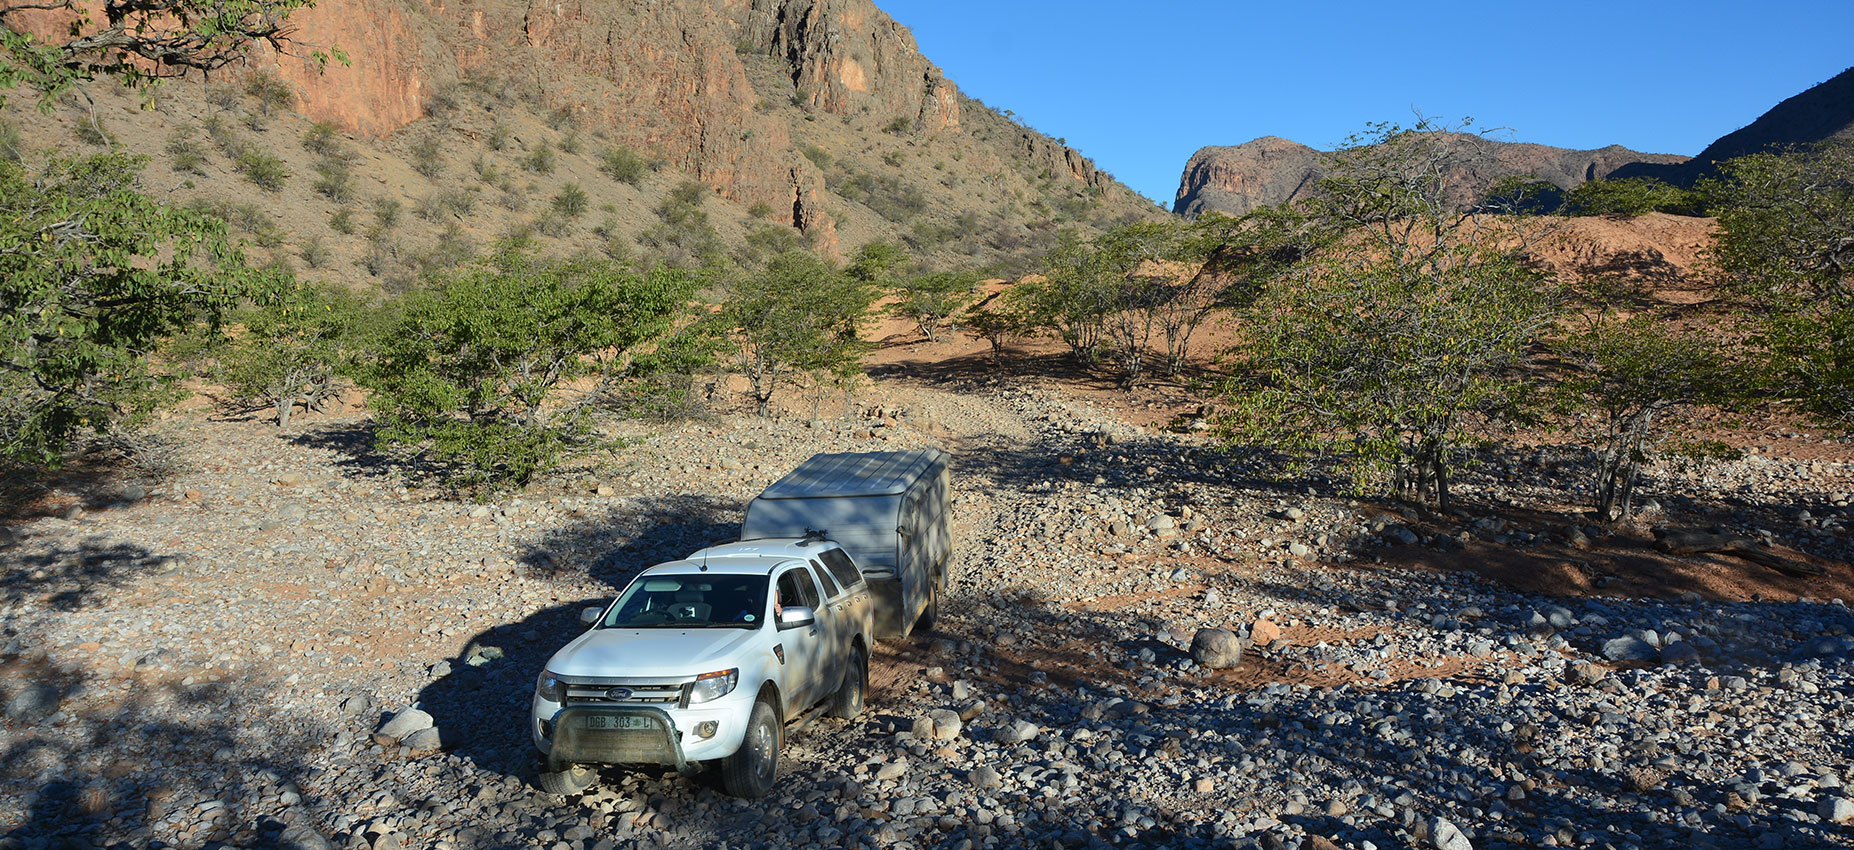 Offroad Caravan on Rocky Road